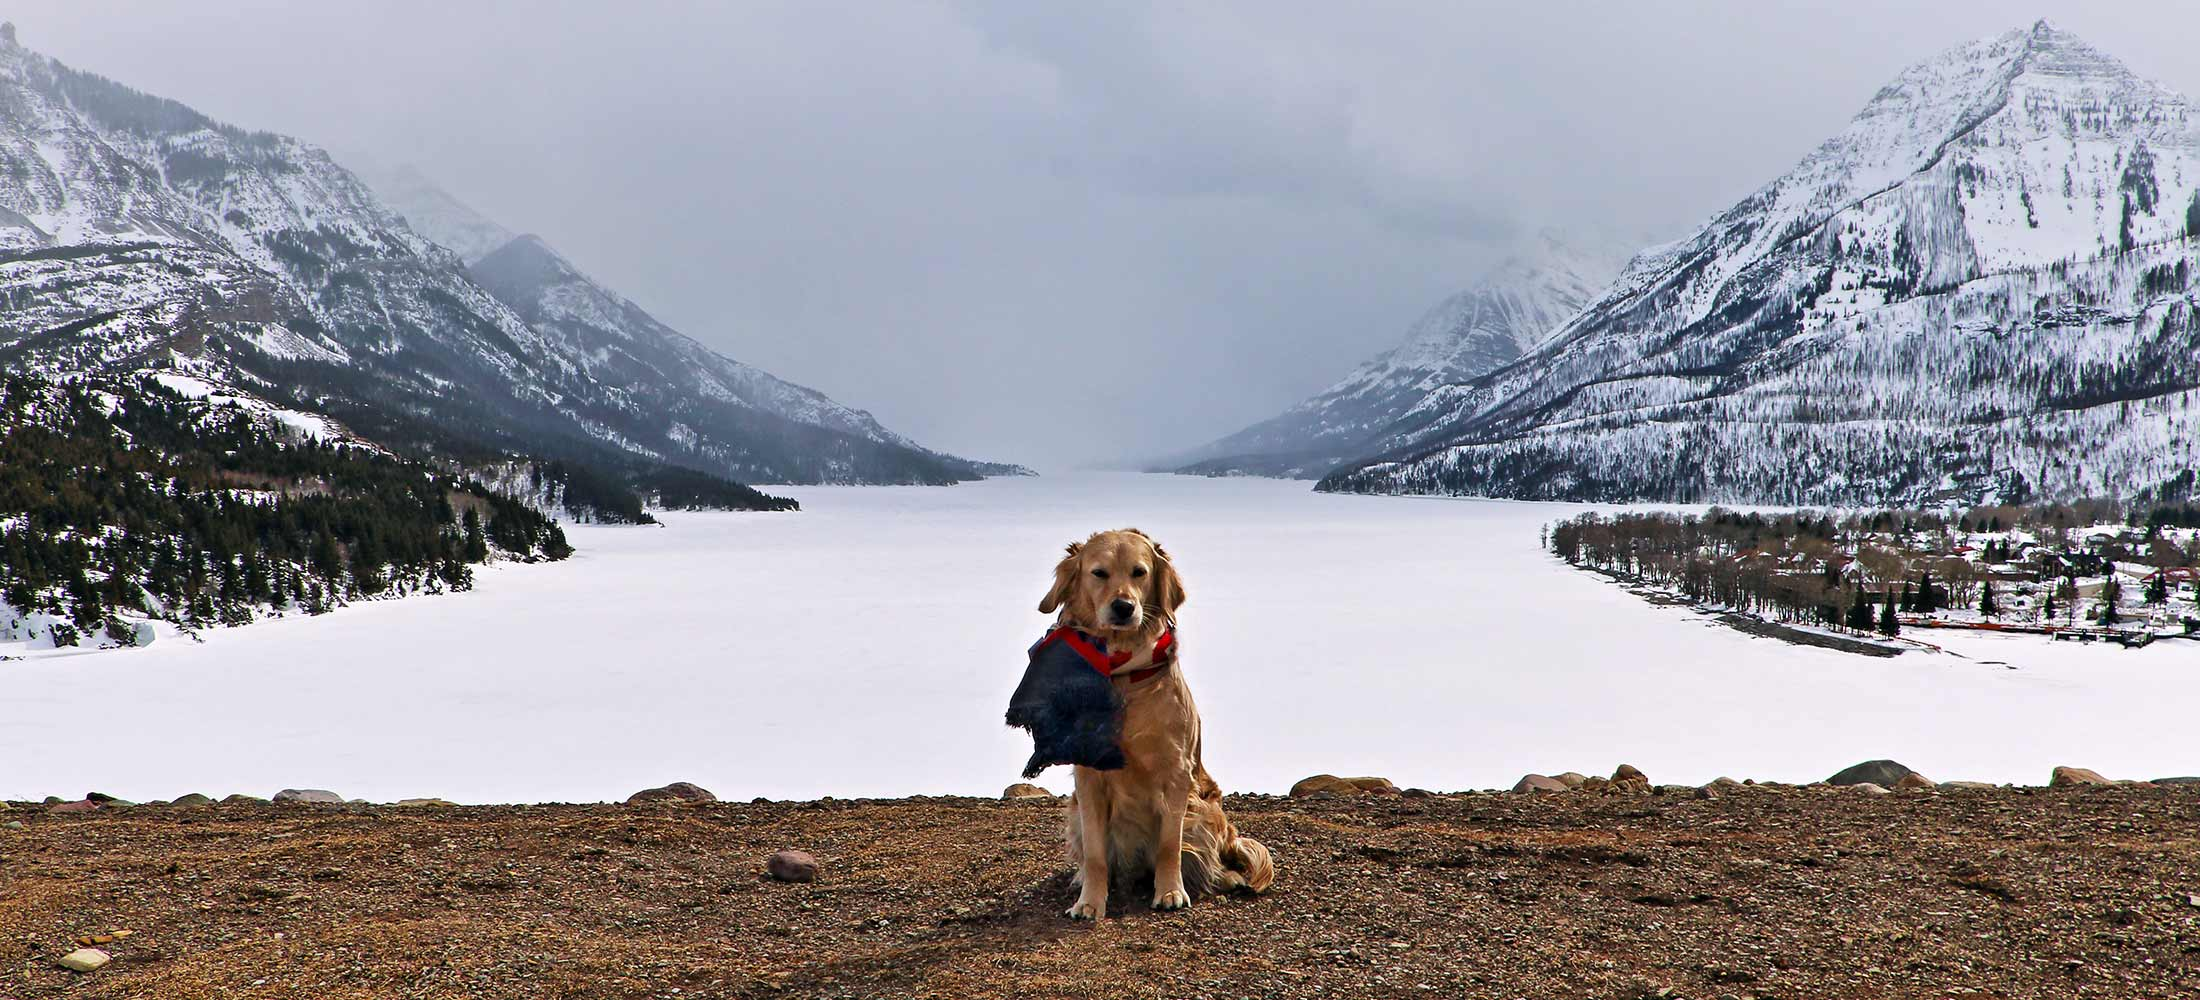 The goodest pupper poses for beautiful mountain photo in Waterton Lakes National Park